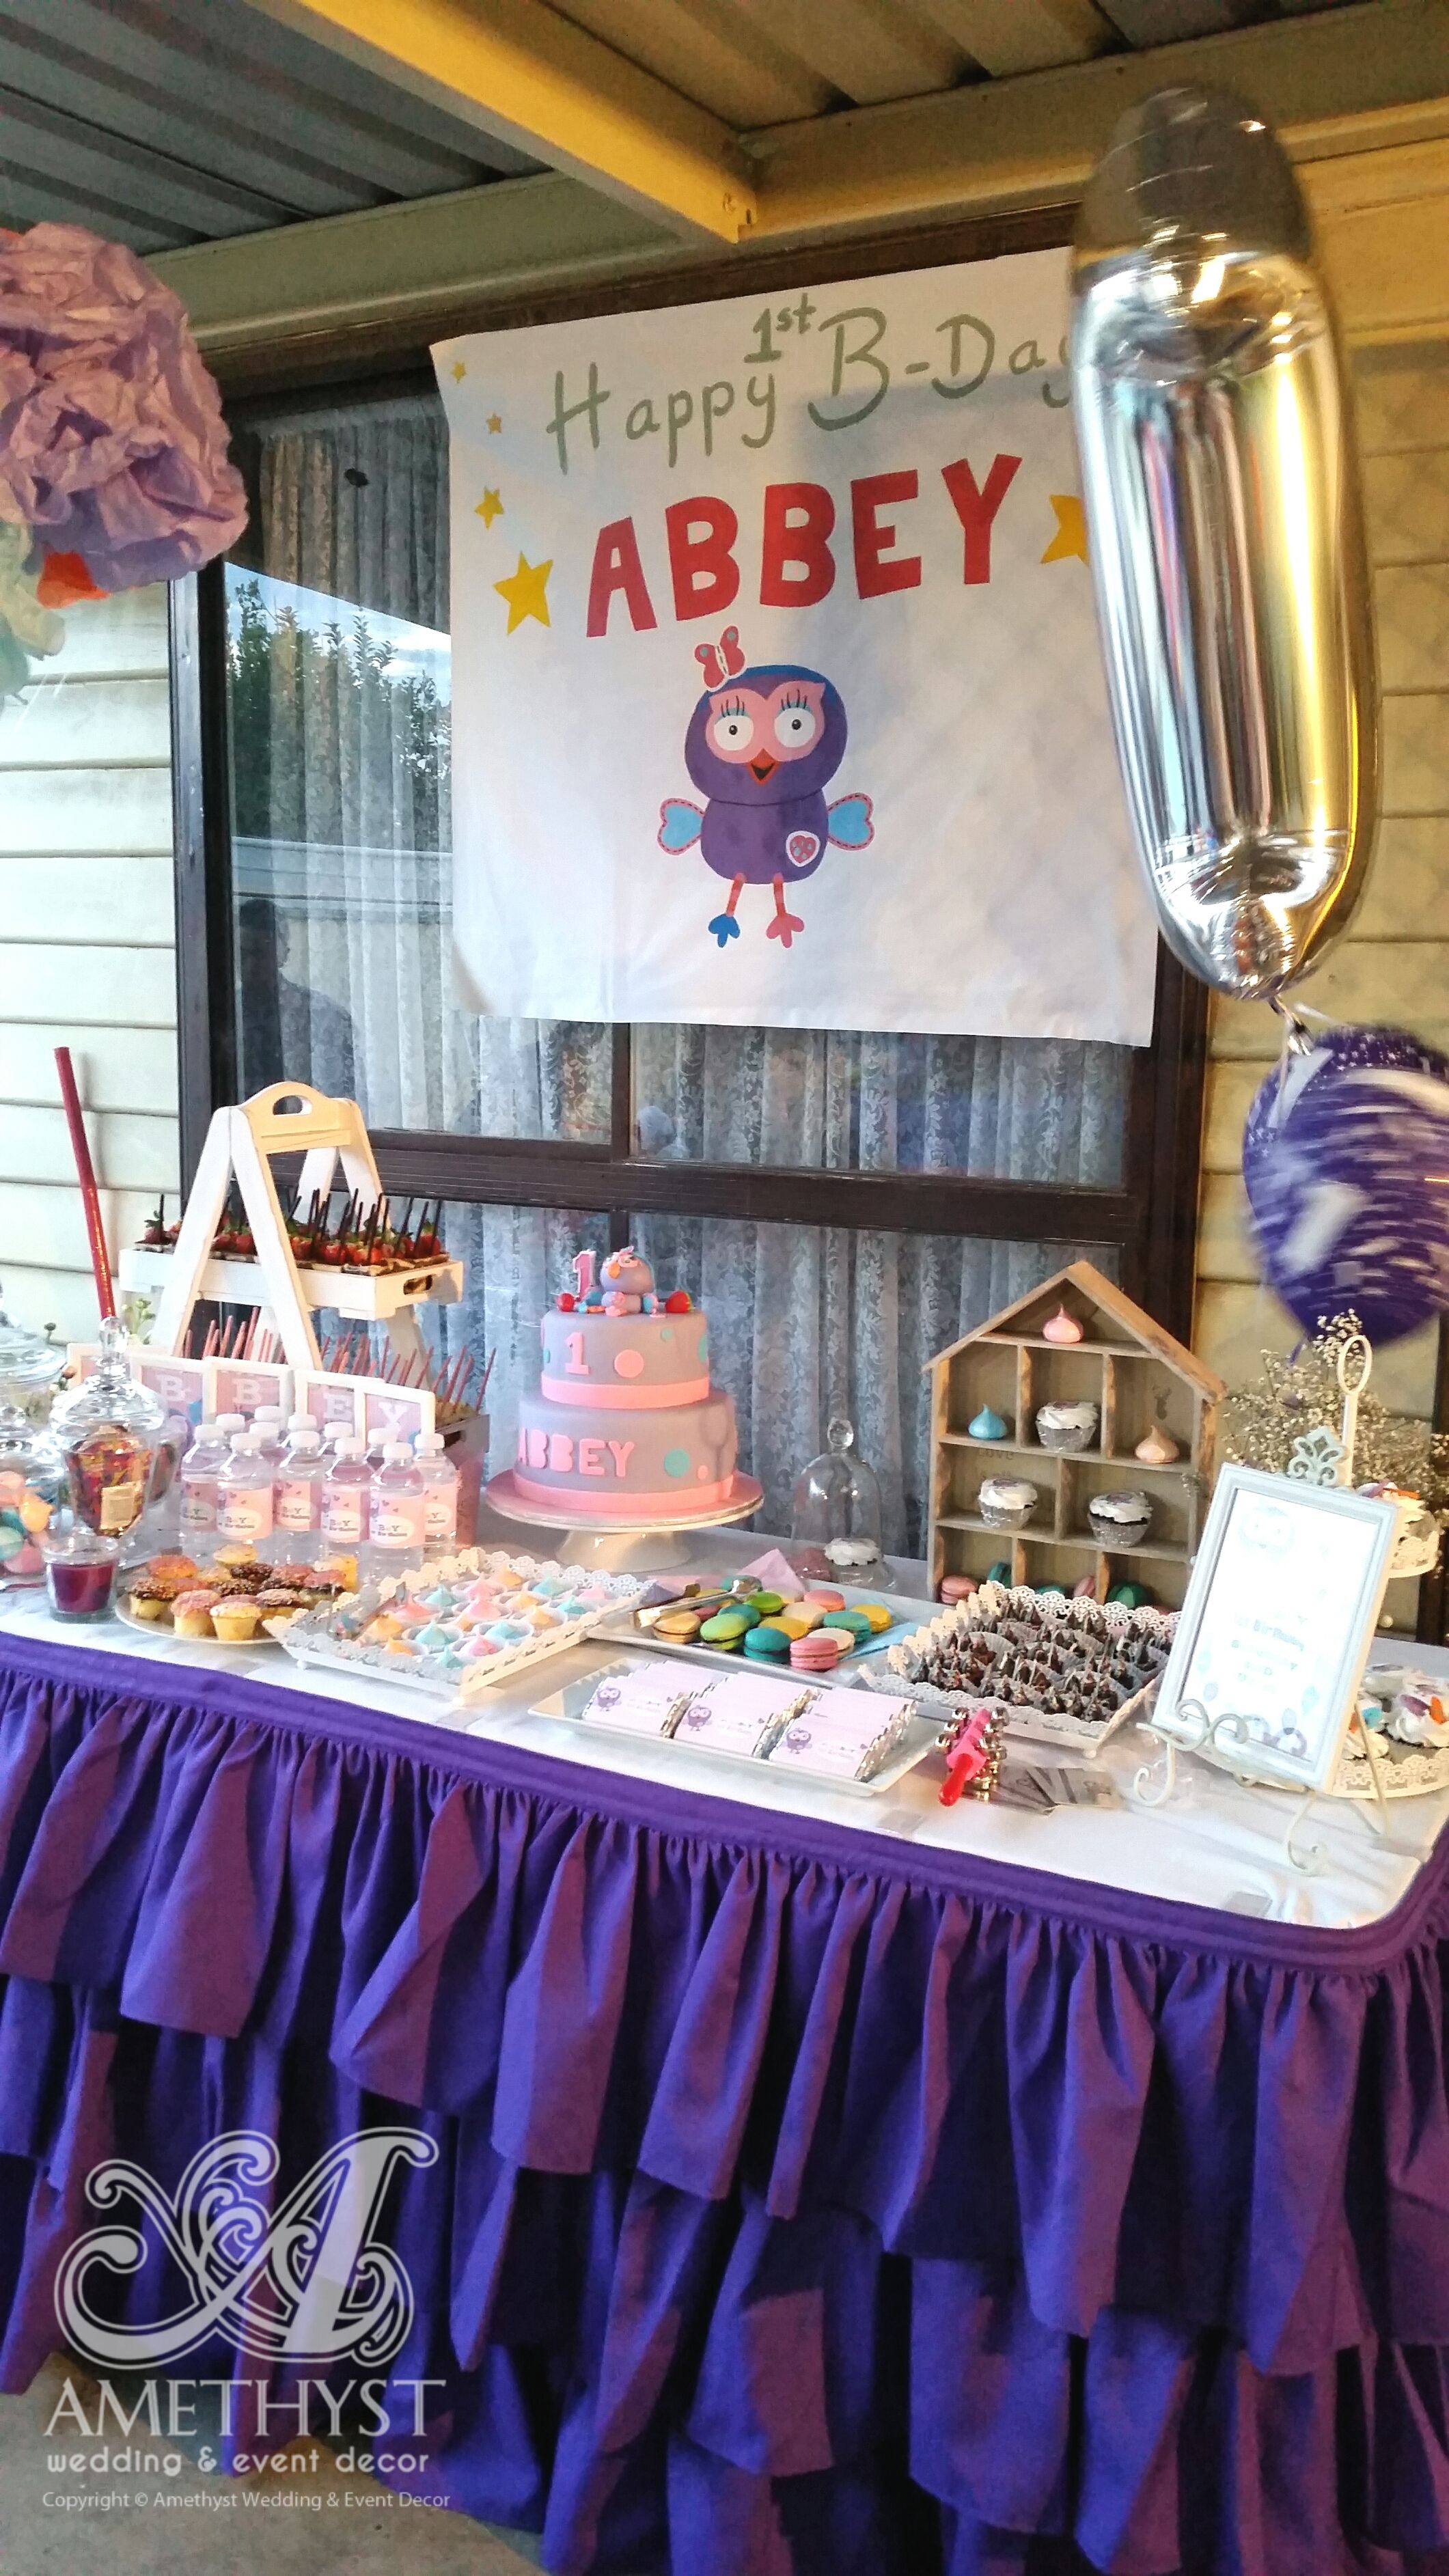 Purple Ruffle table skirting for dessert/candy table